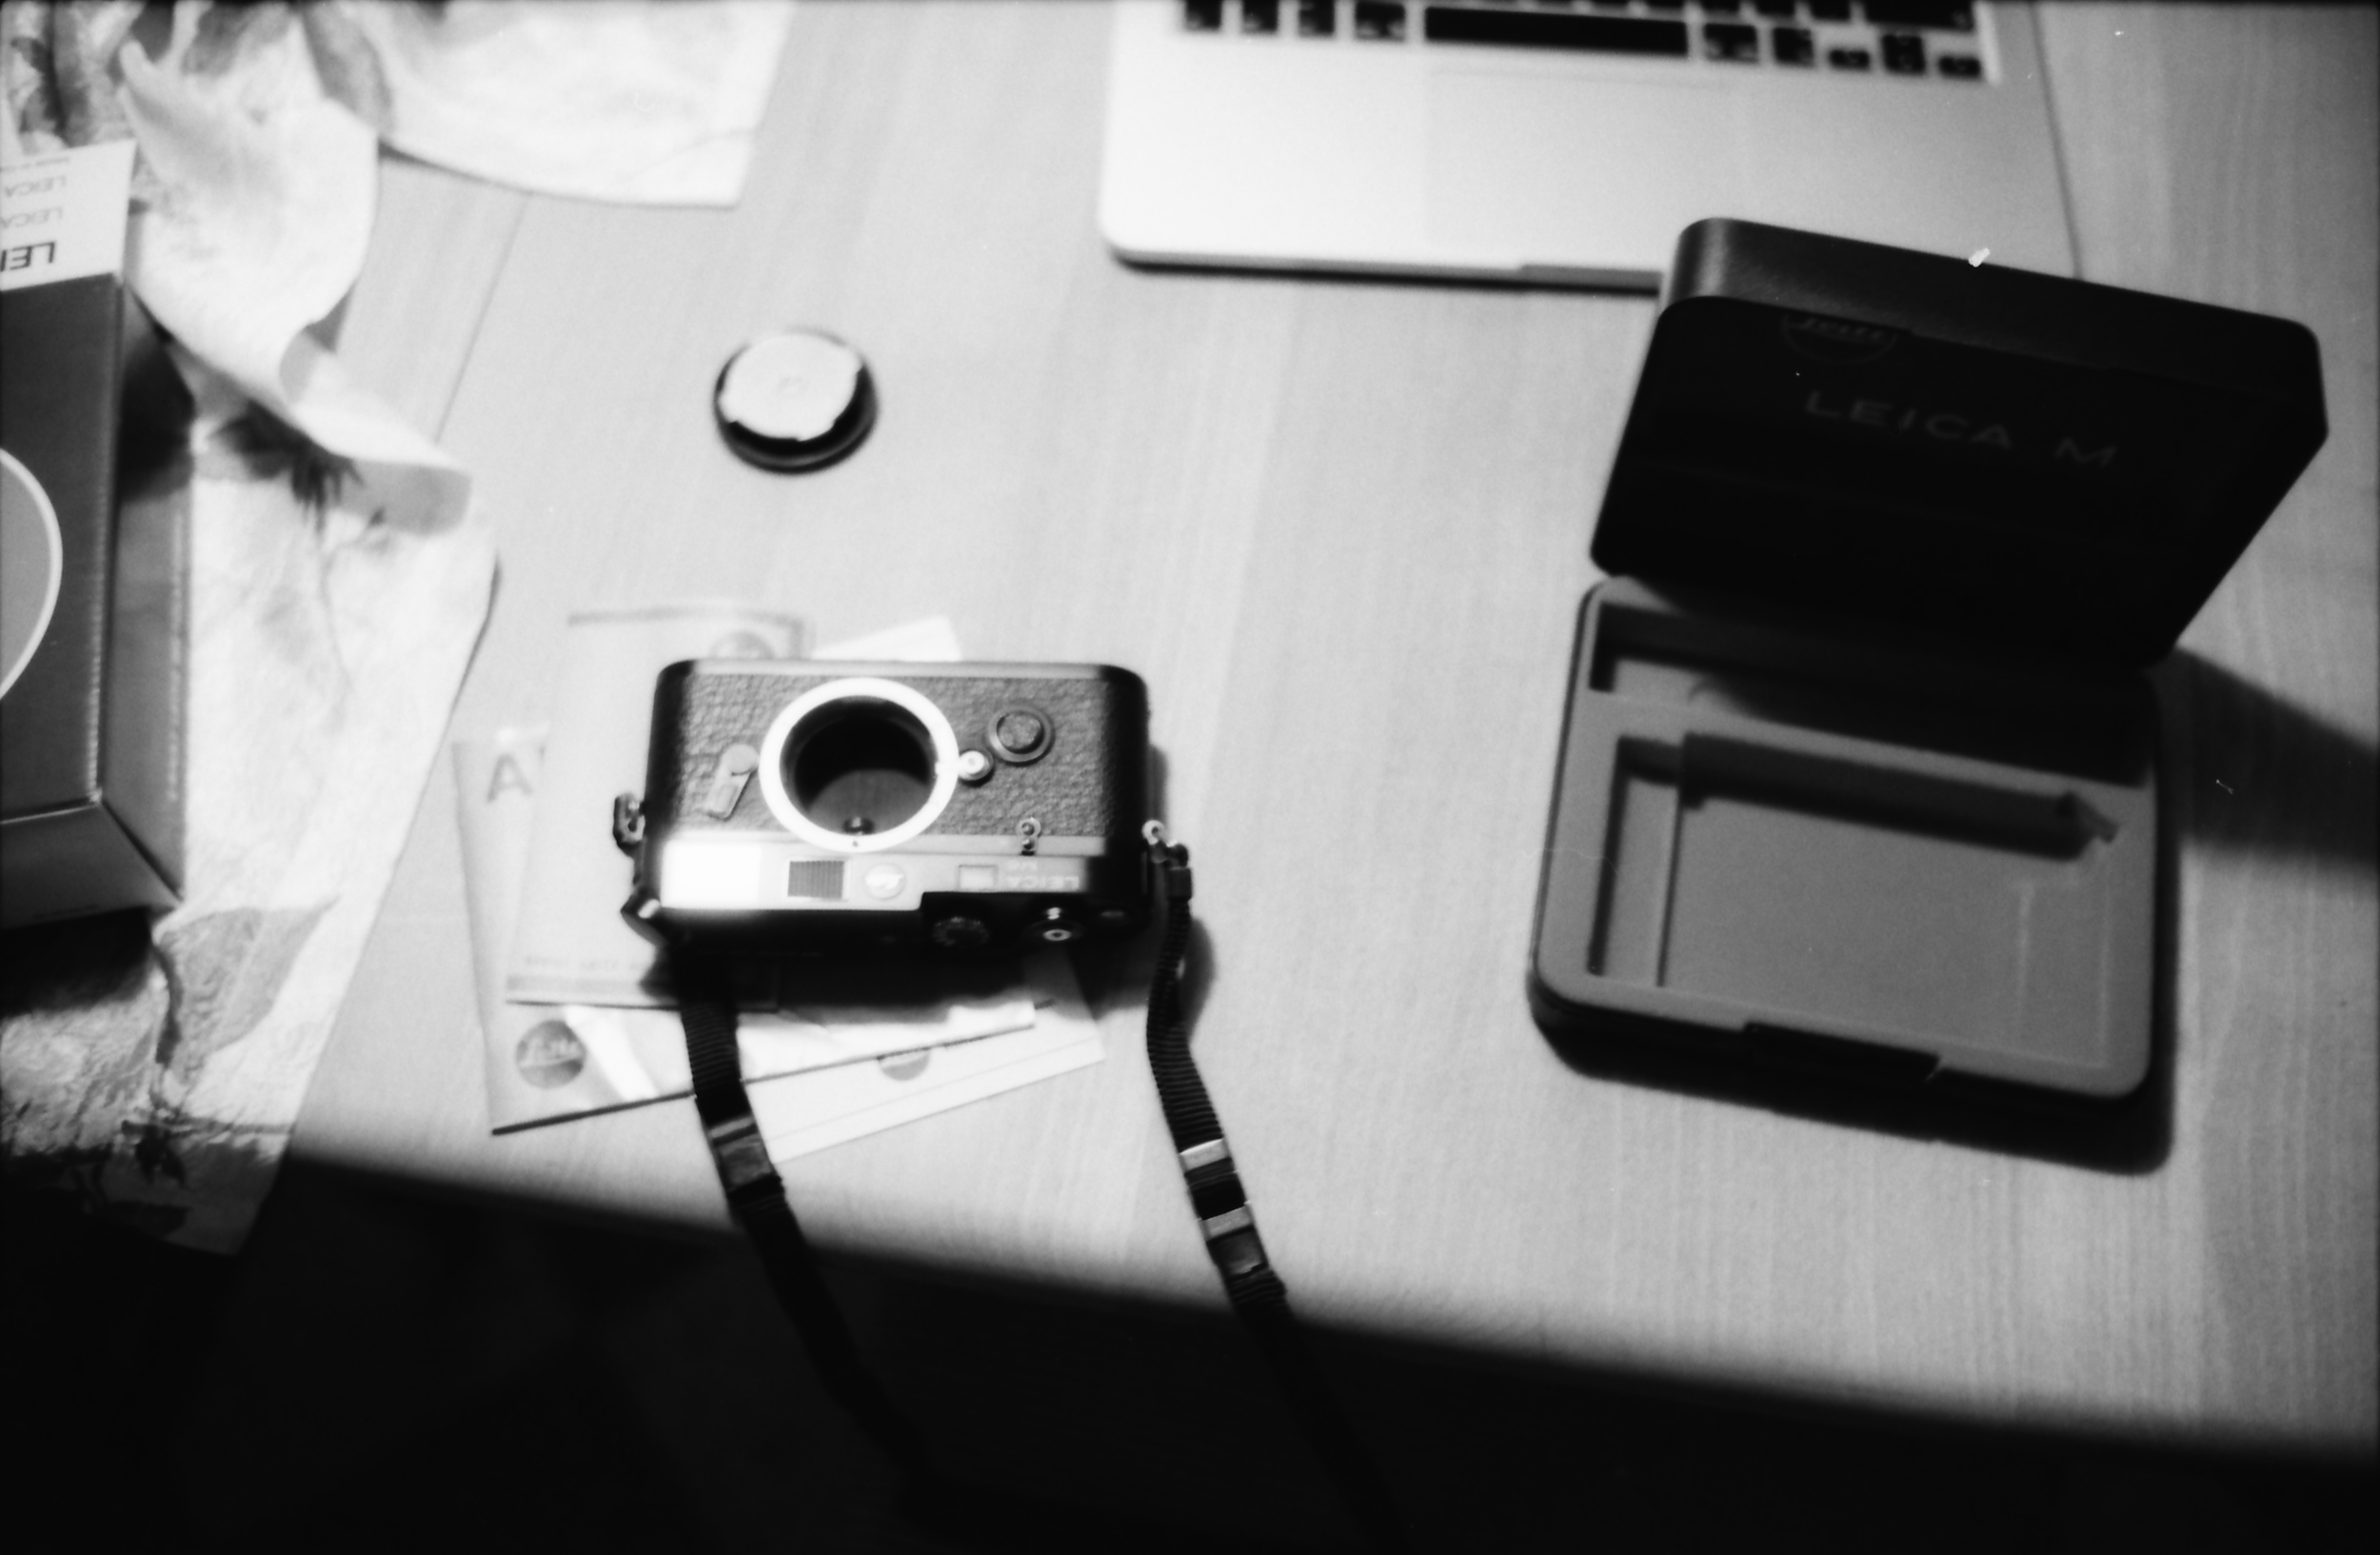 My Leica M6 just after unboxing